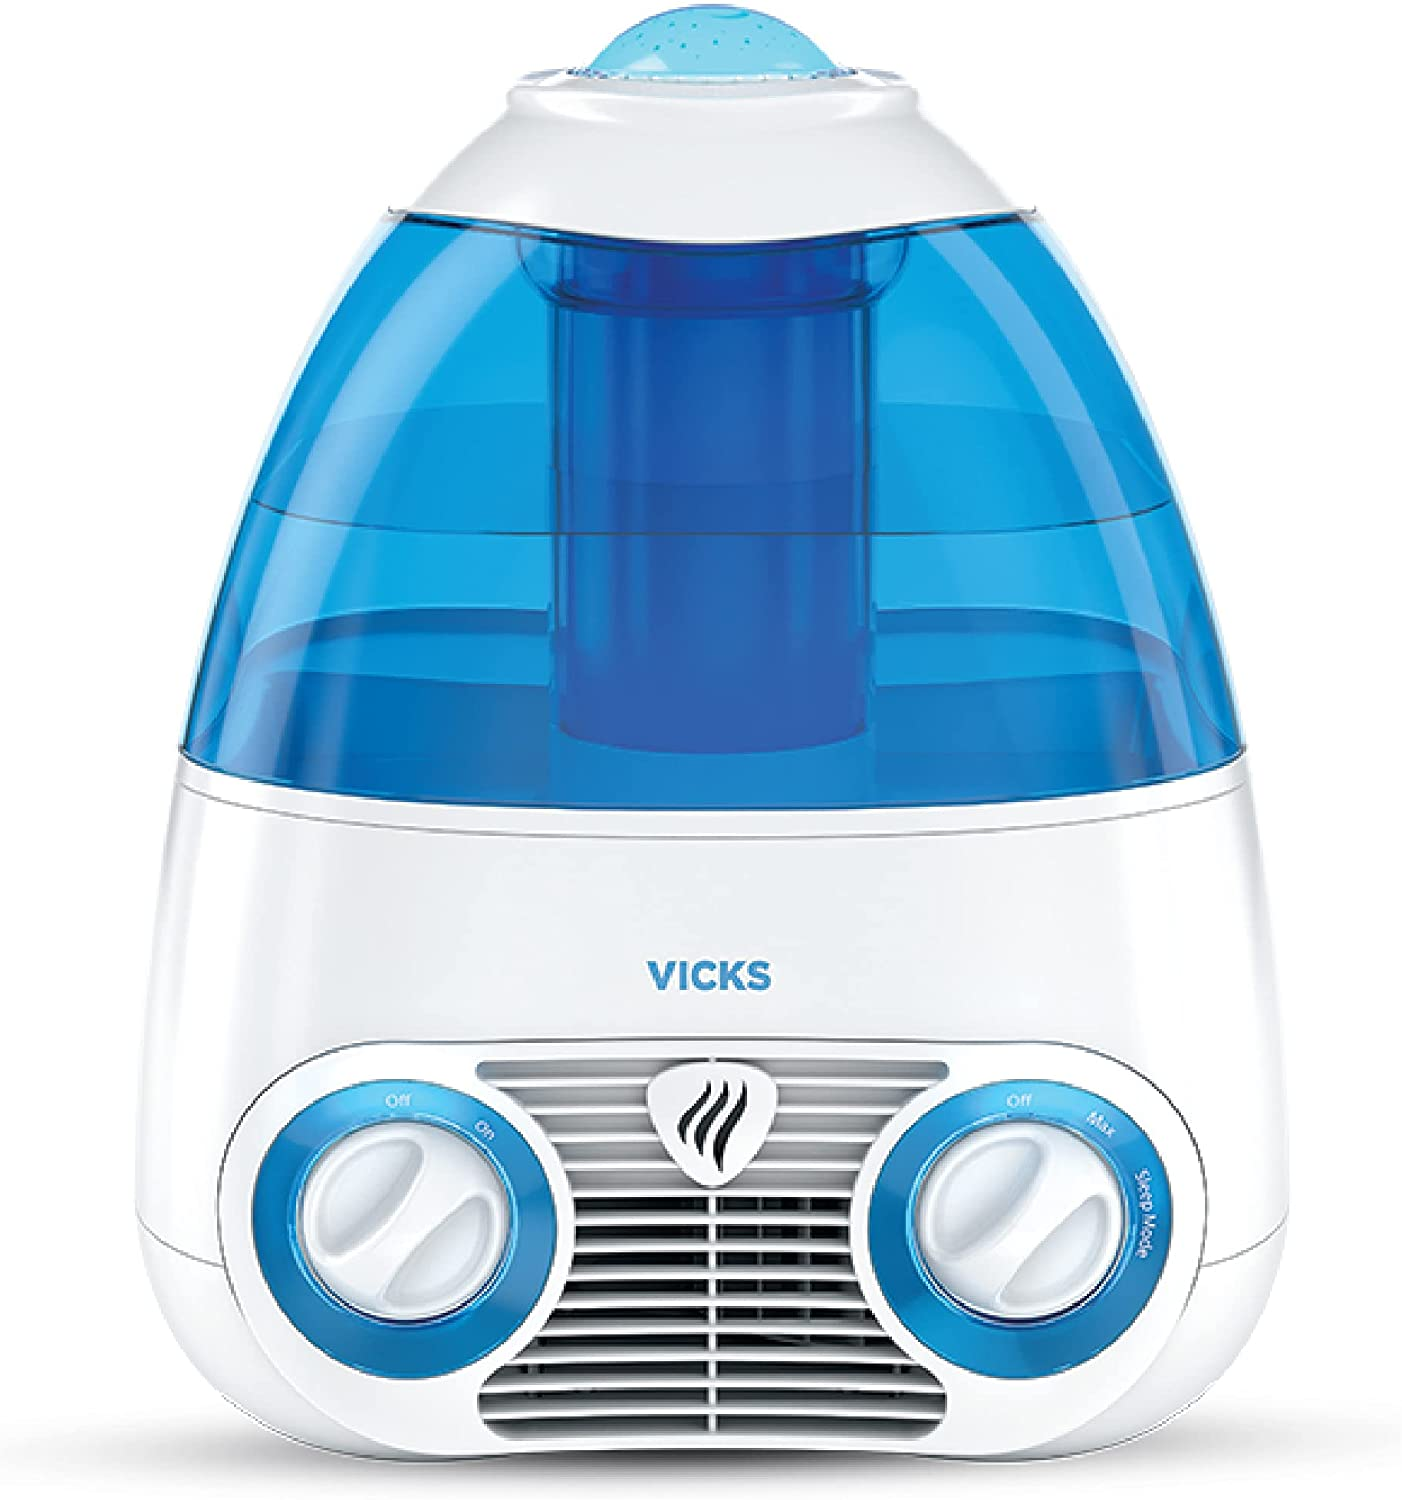 Vicks Starry Night Filtered Cool Mist Humidifier Review